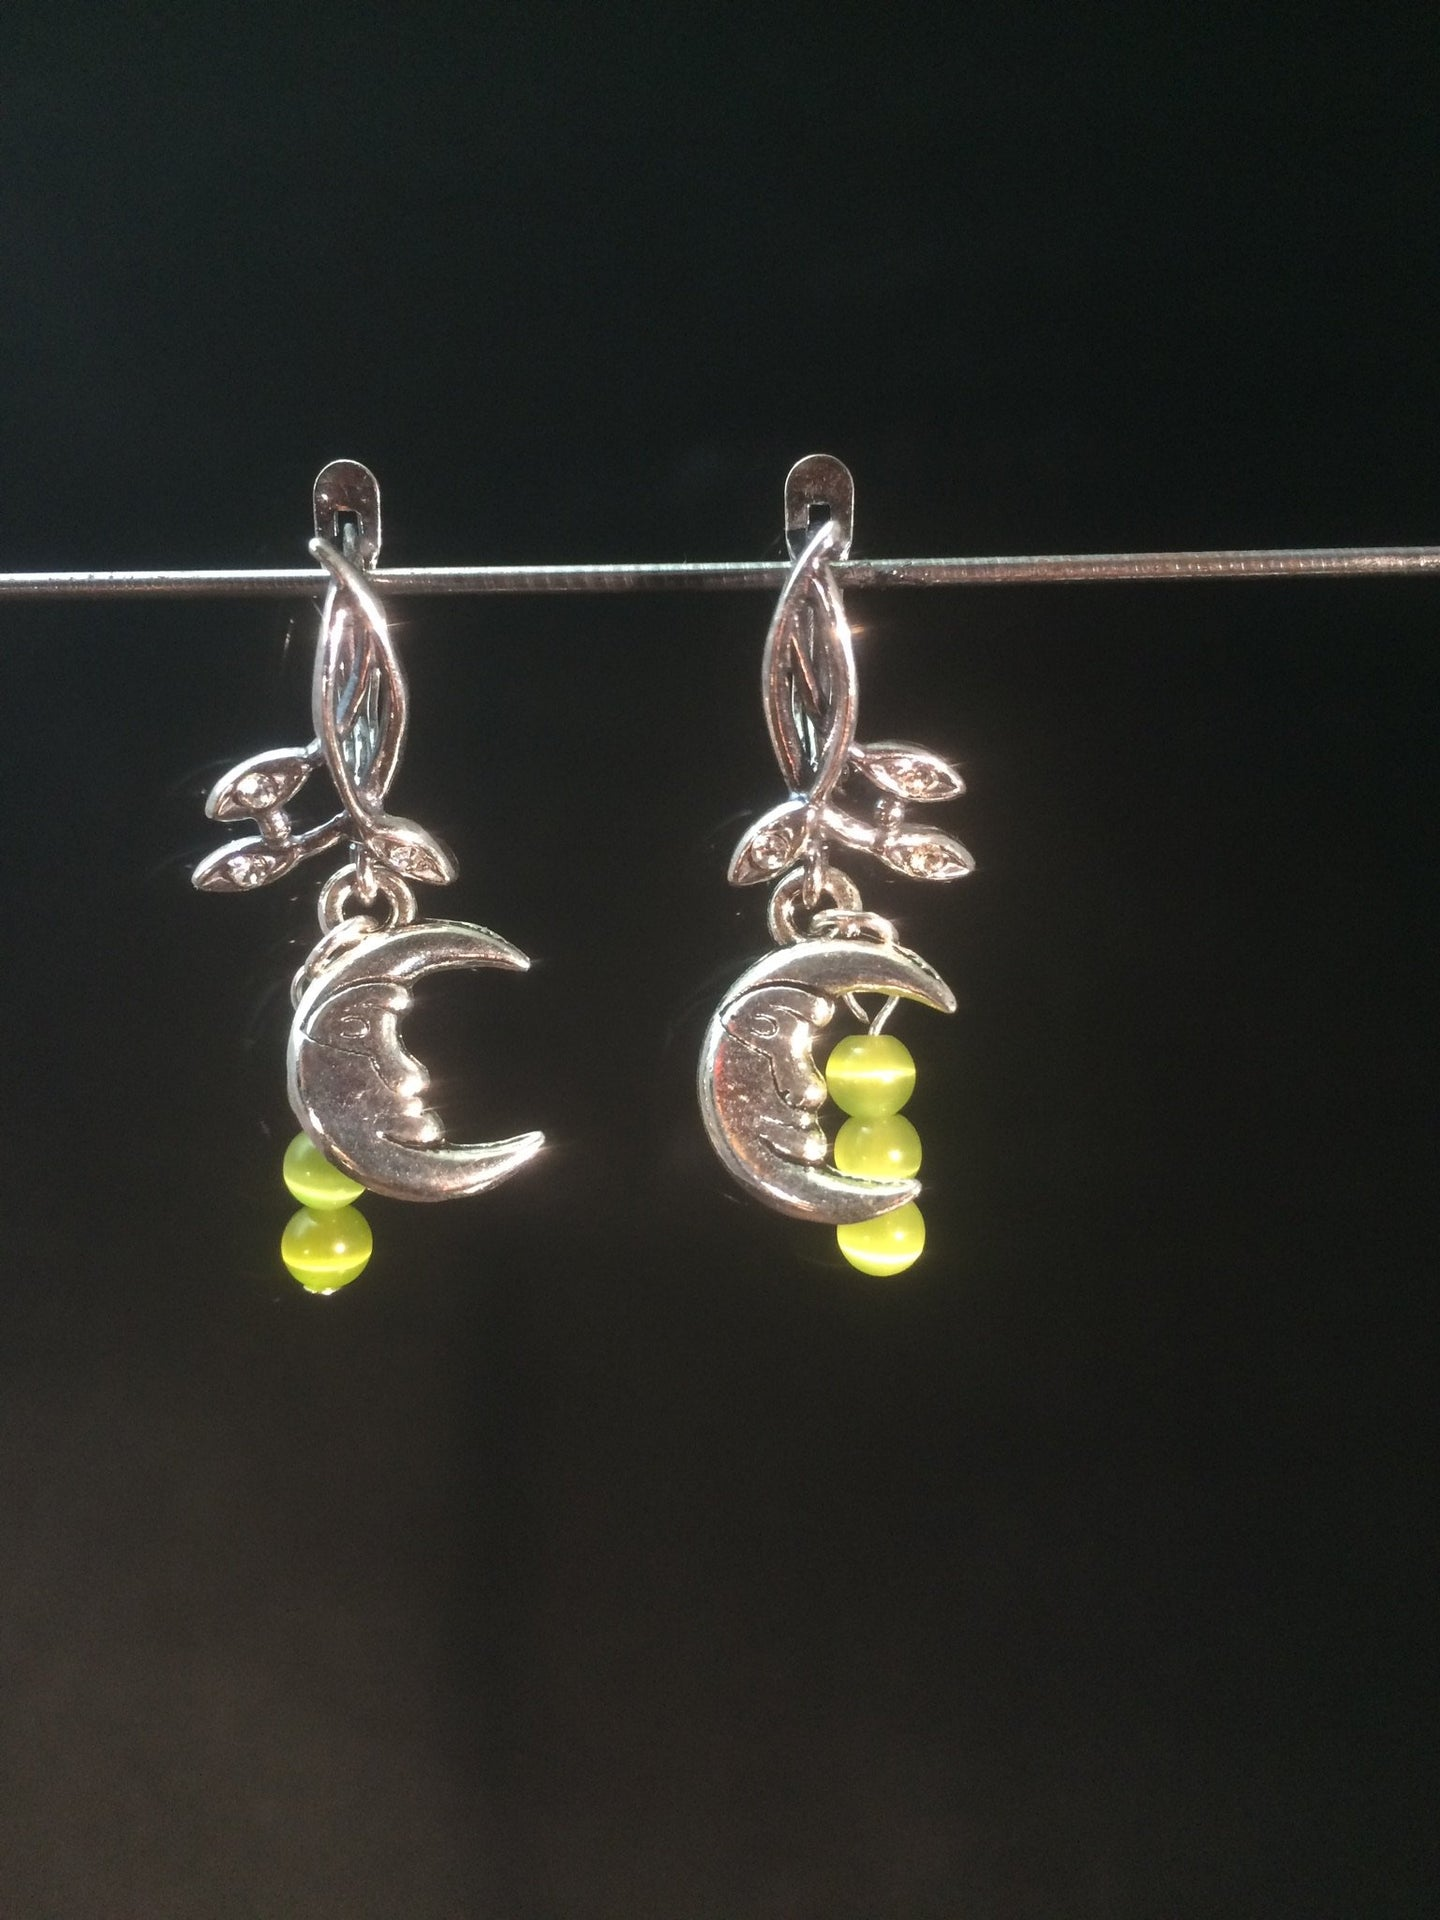 A silver plated moon charm is adorned with natural peridot beads, then set on silver plated brass leverbacks. These earrings form a matching set with necklace 1NCK0053.